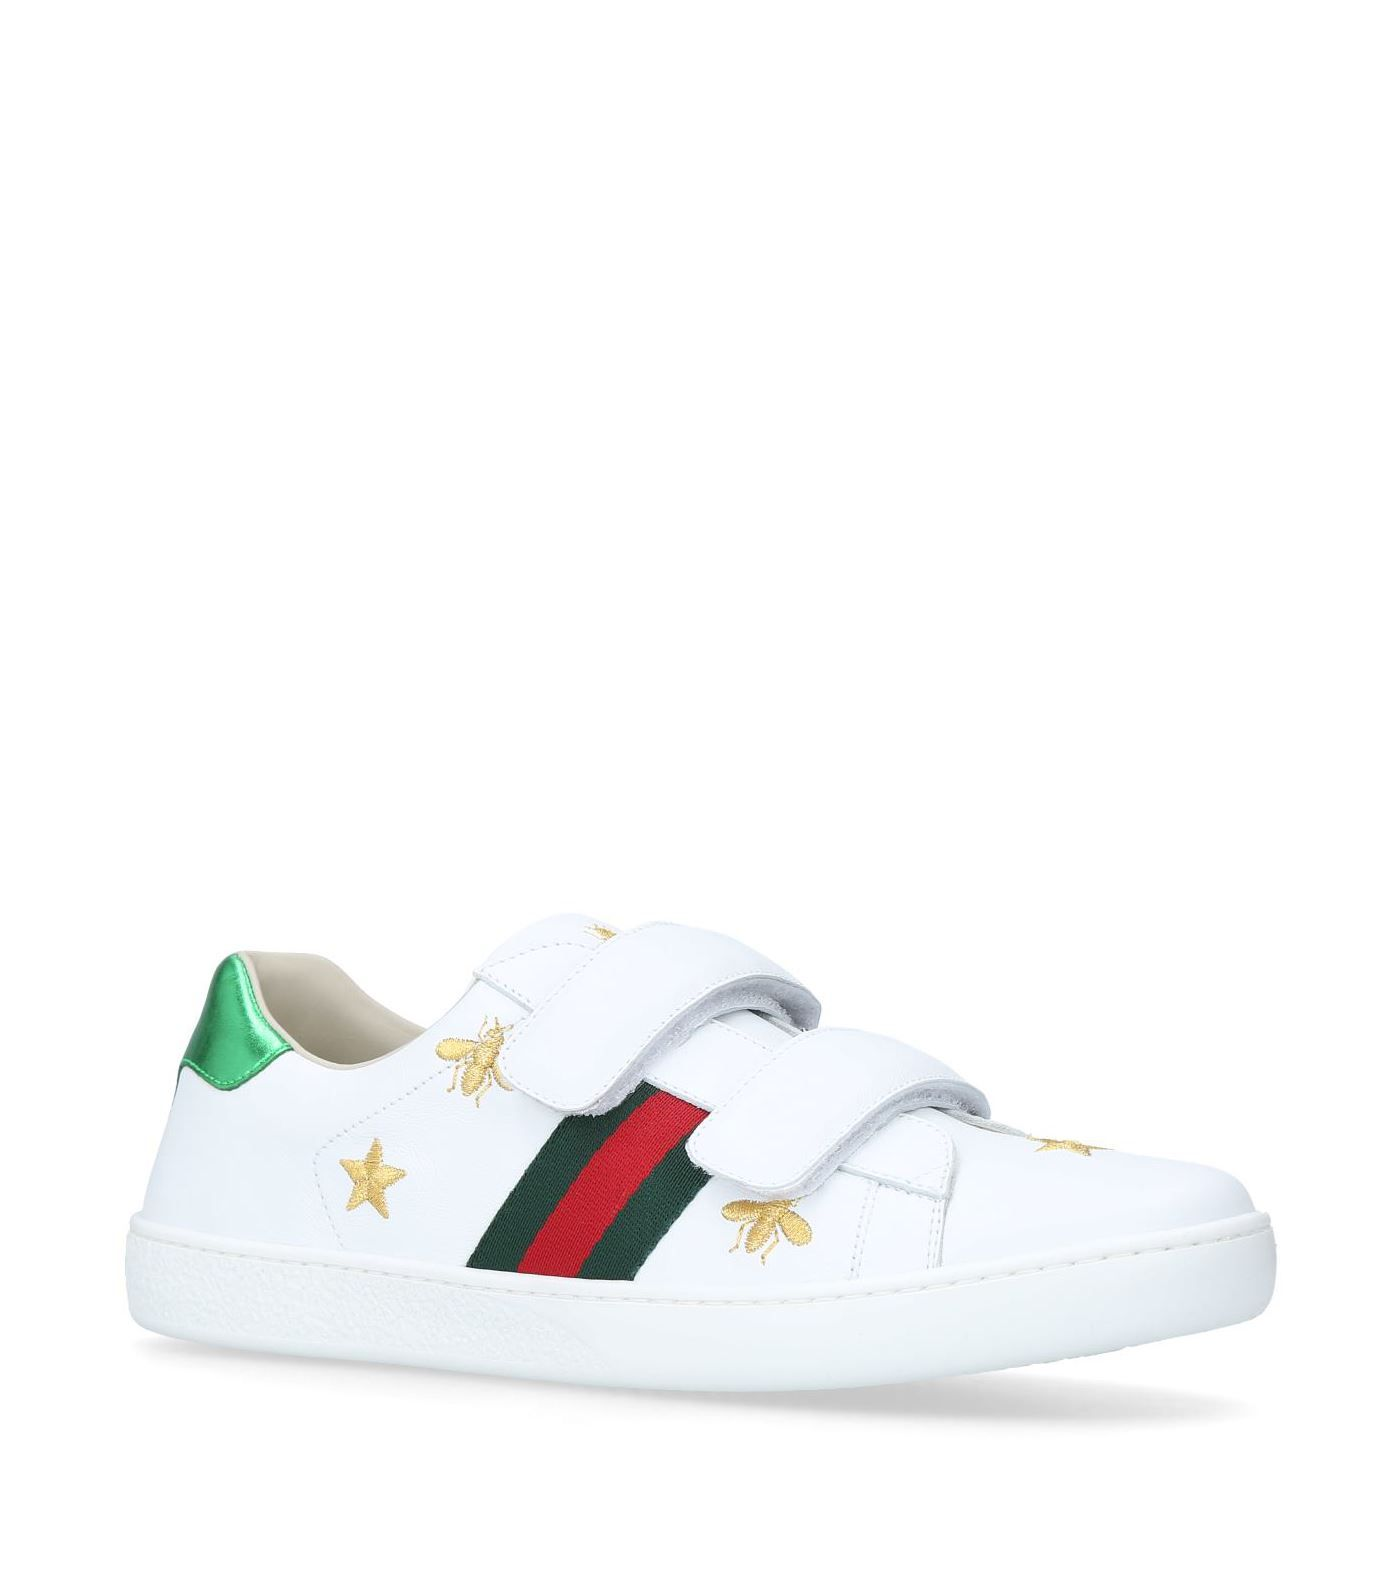 Gucci kids, Sneakers, Leather trainers